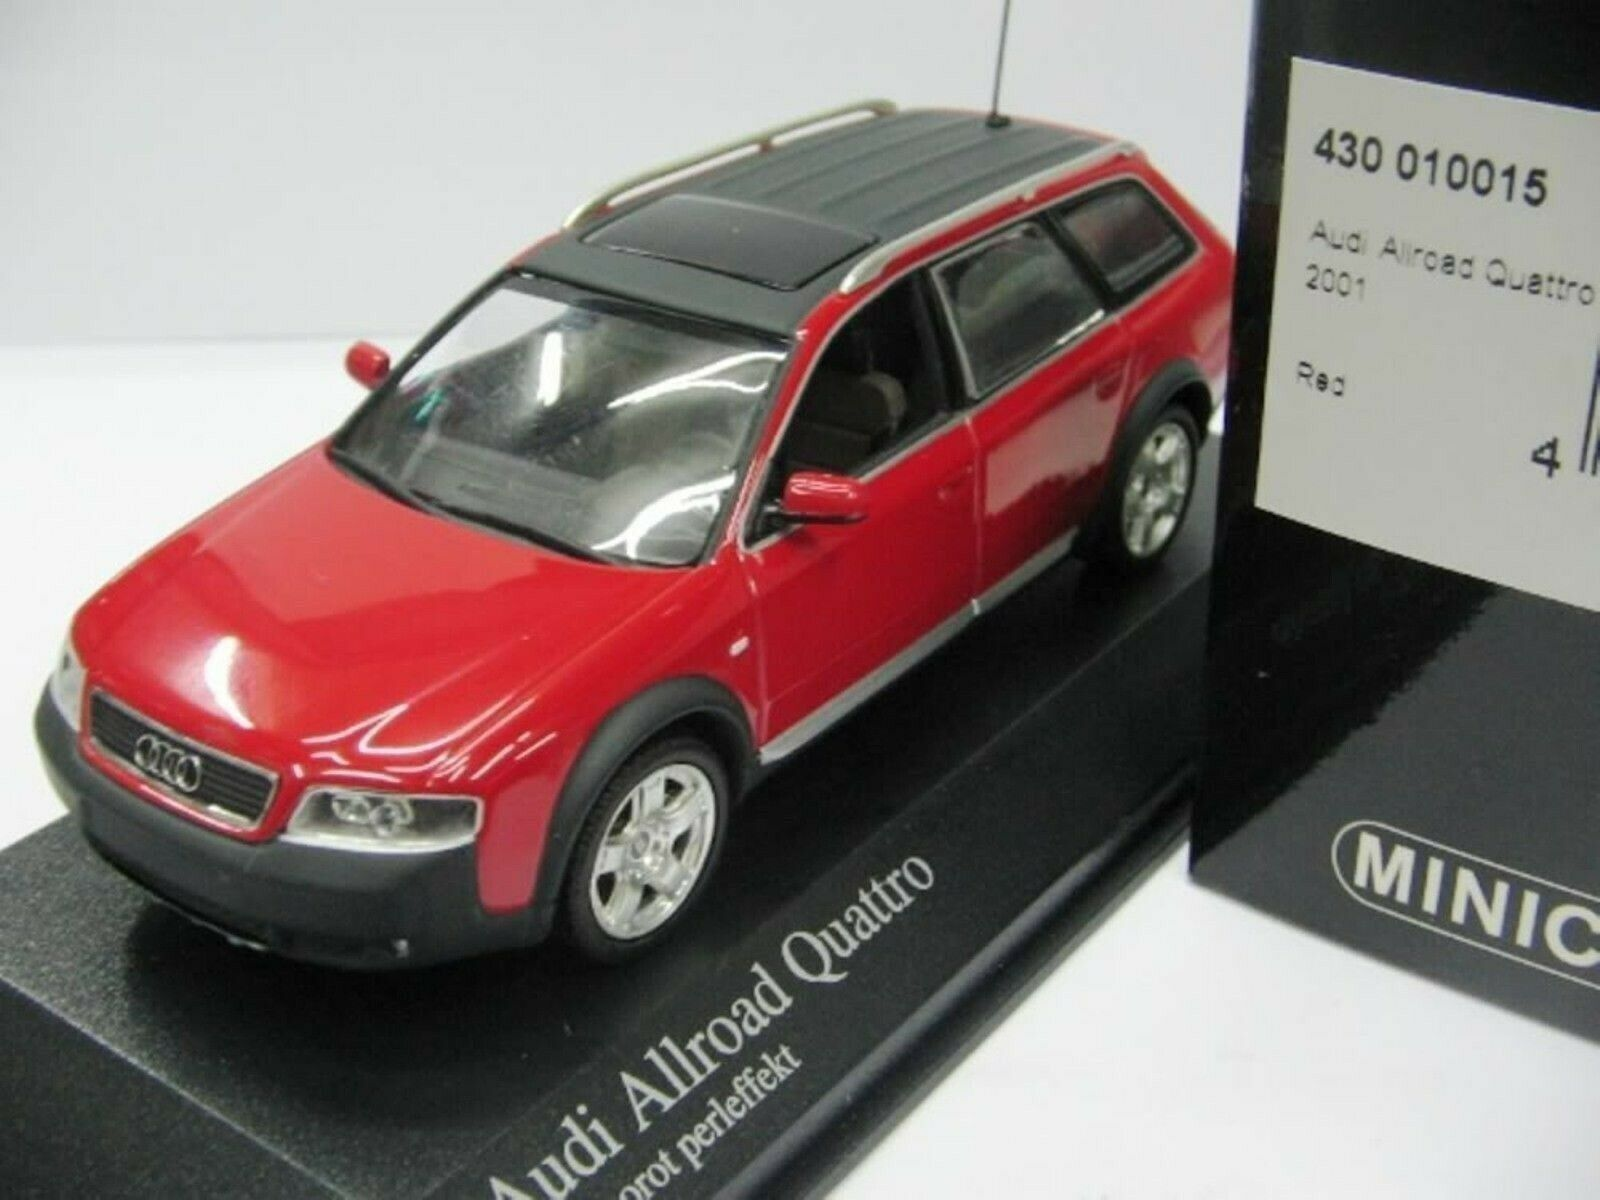 WOW EXTREMELY RARE Audi A6 C5 Avant Allroad 2.7 Quattro 2001 Red 1 43 Minichamps